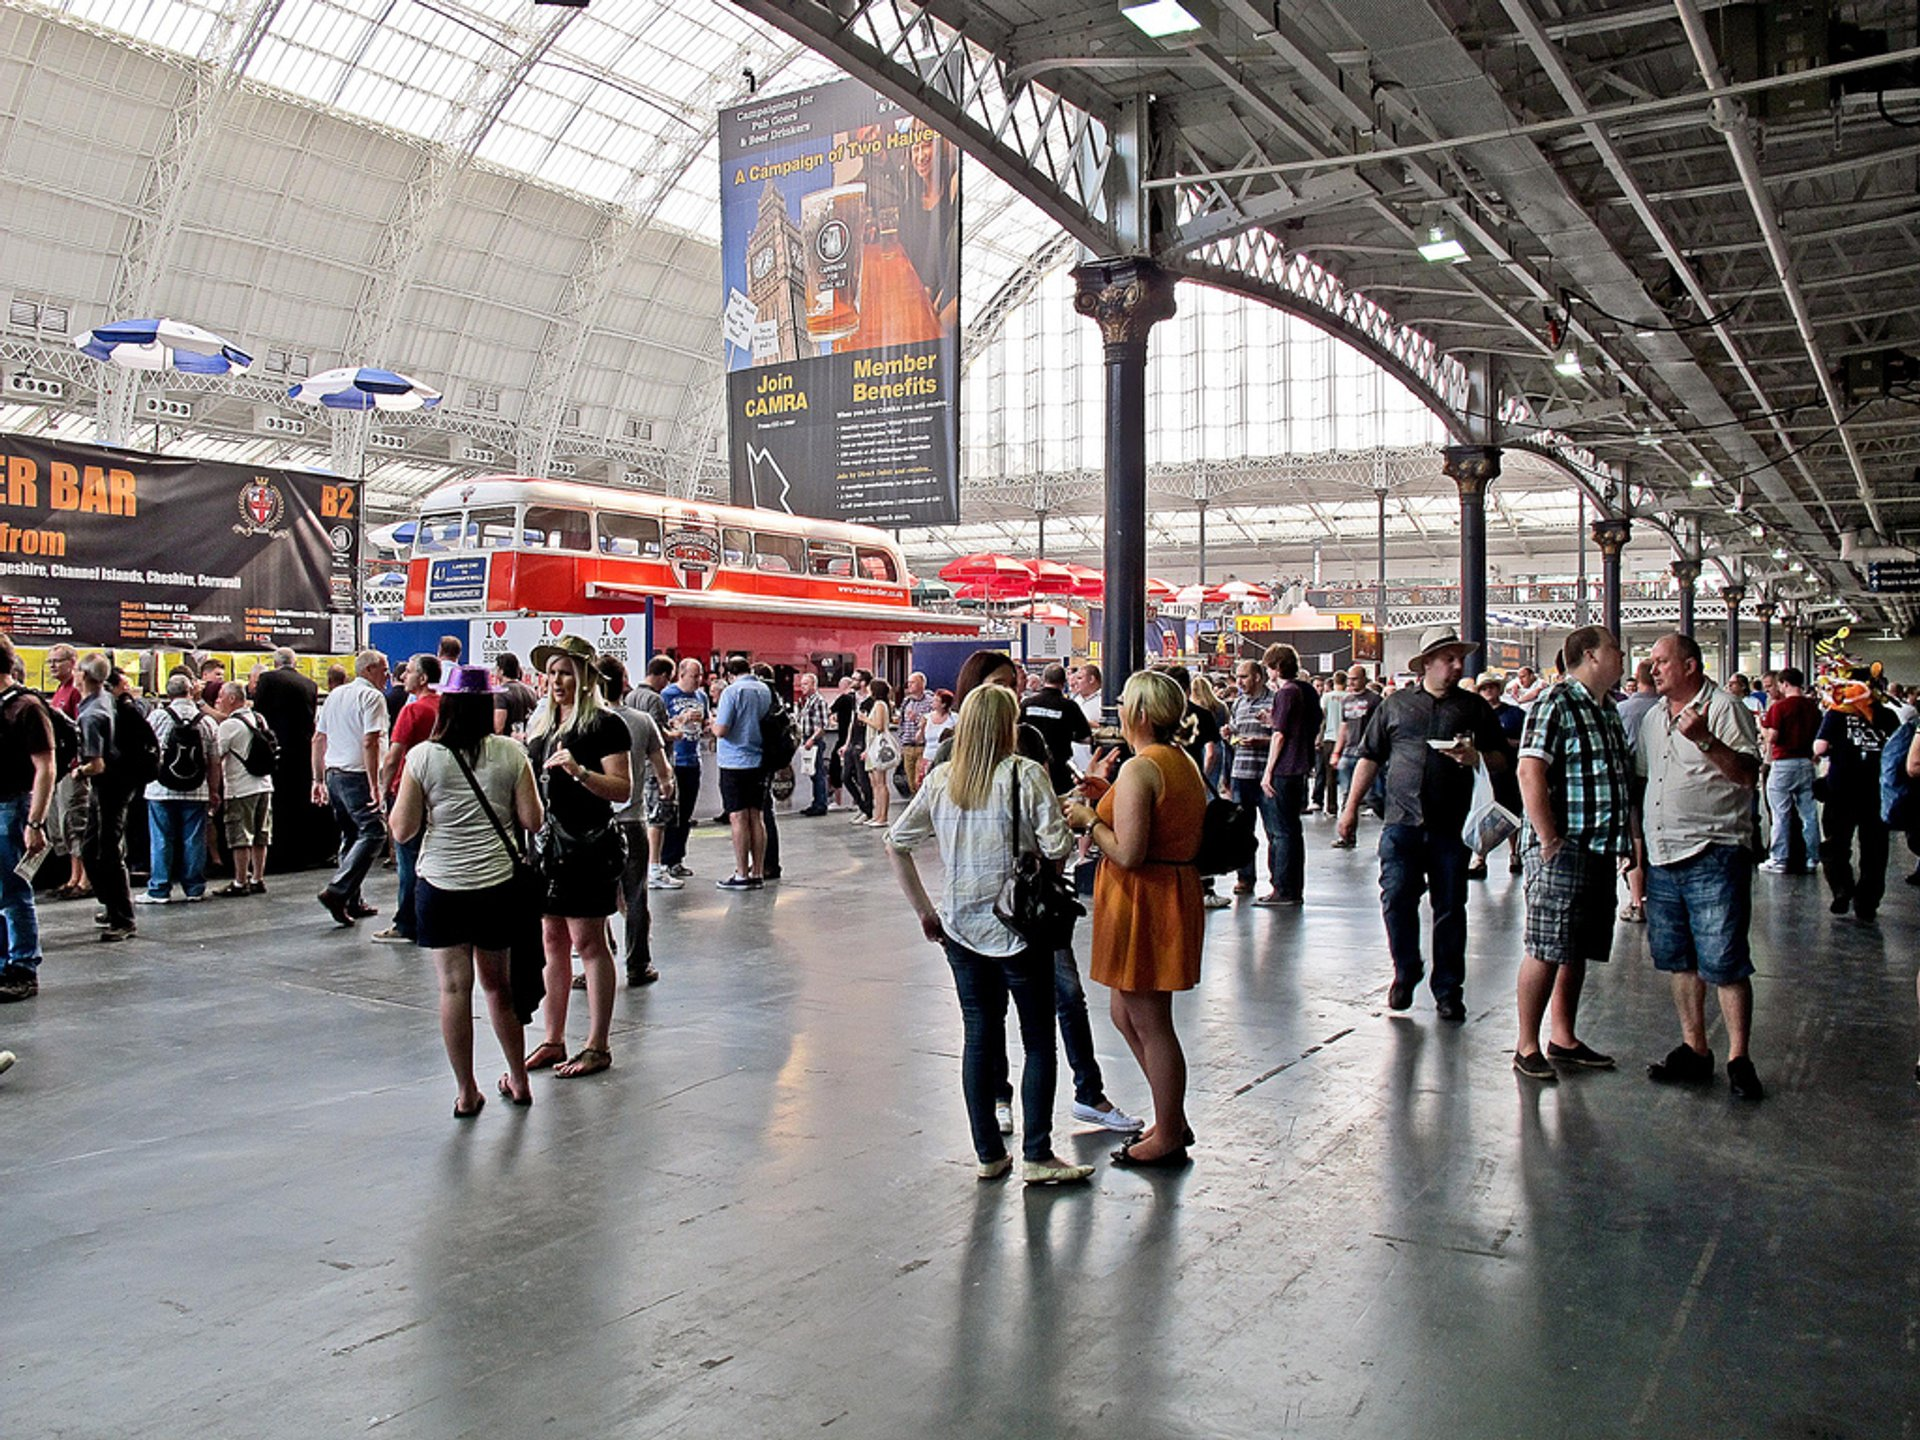 Great British Beer Festival in London - Best Season 2020